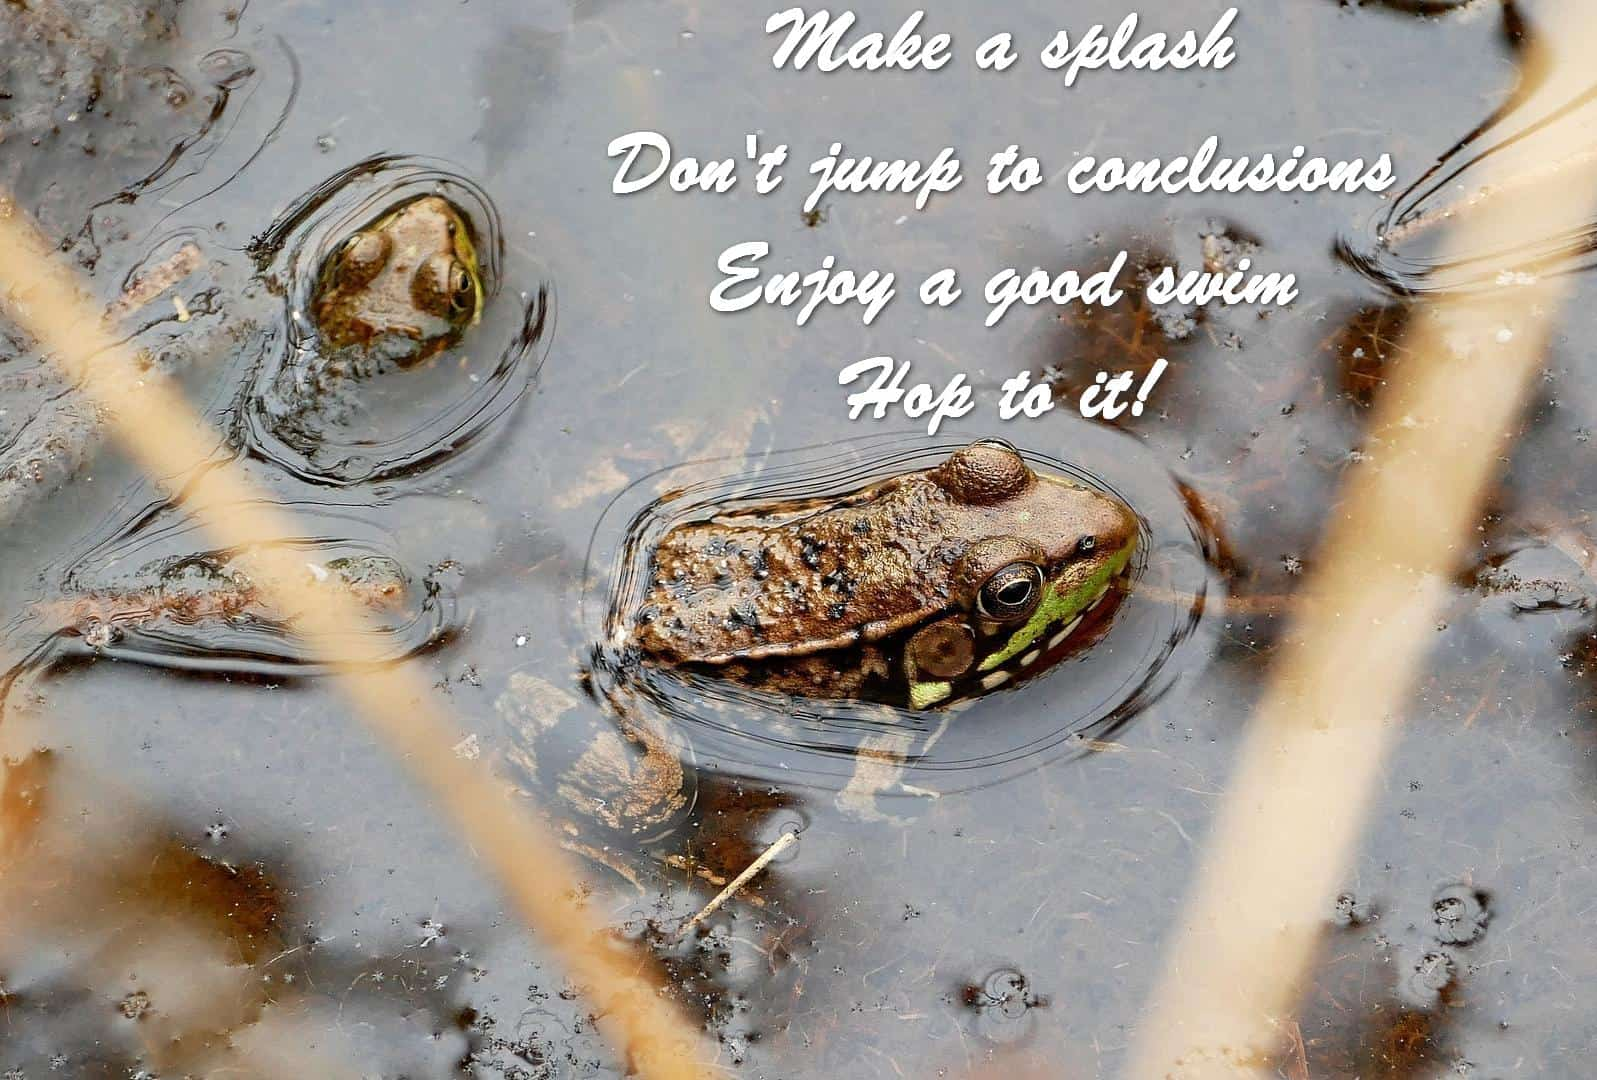 Make a splash Don't jump to conclusions Enjoy a good swim Hop to it!